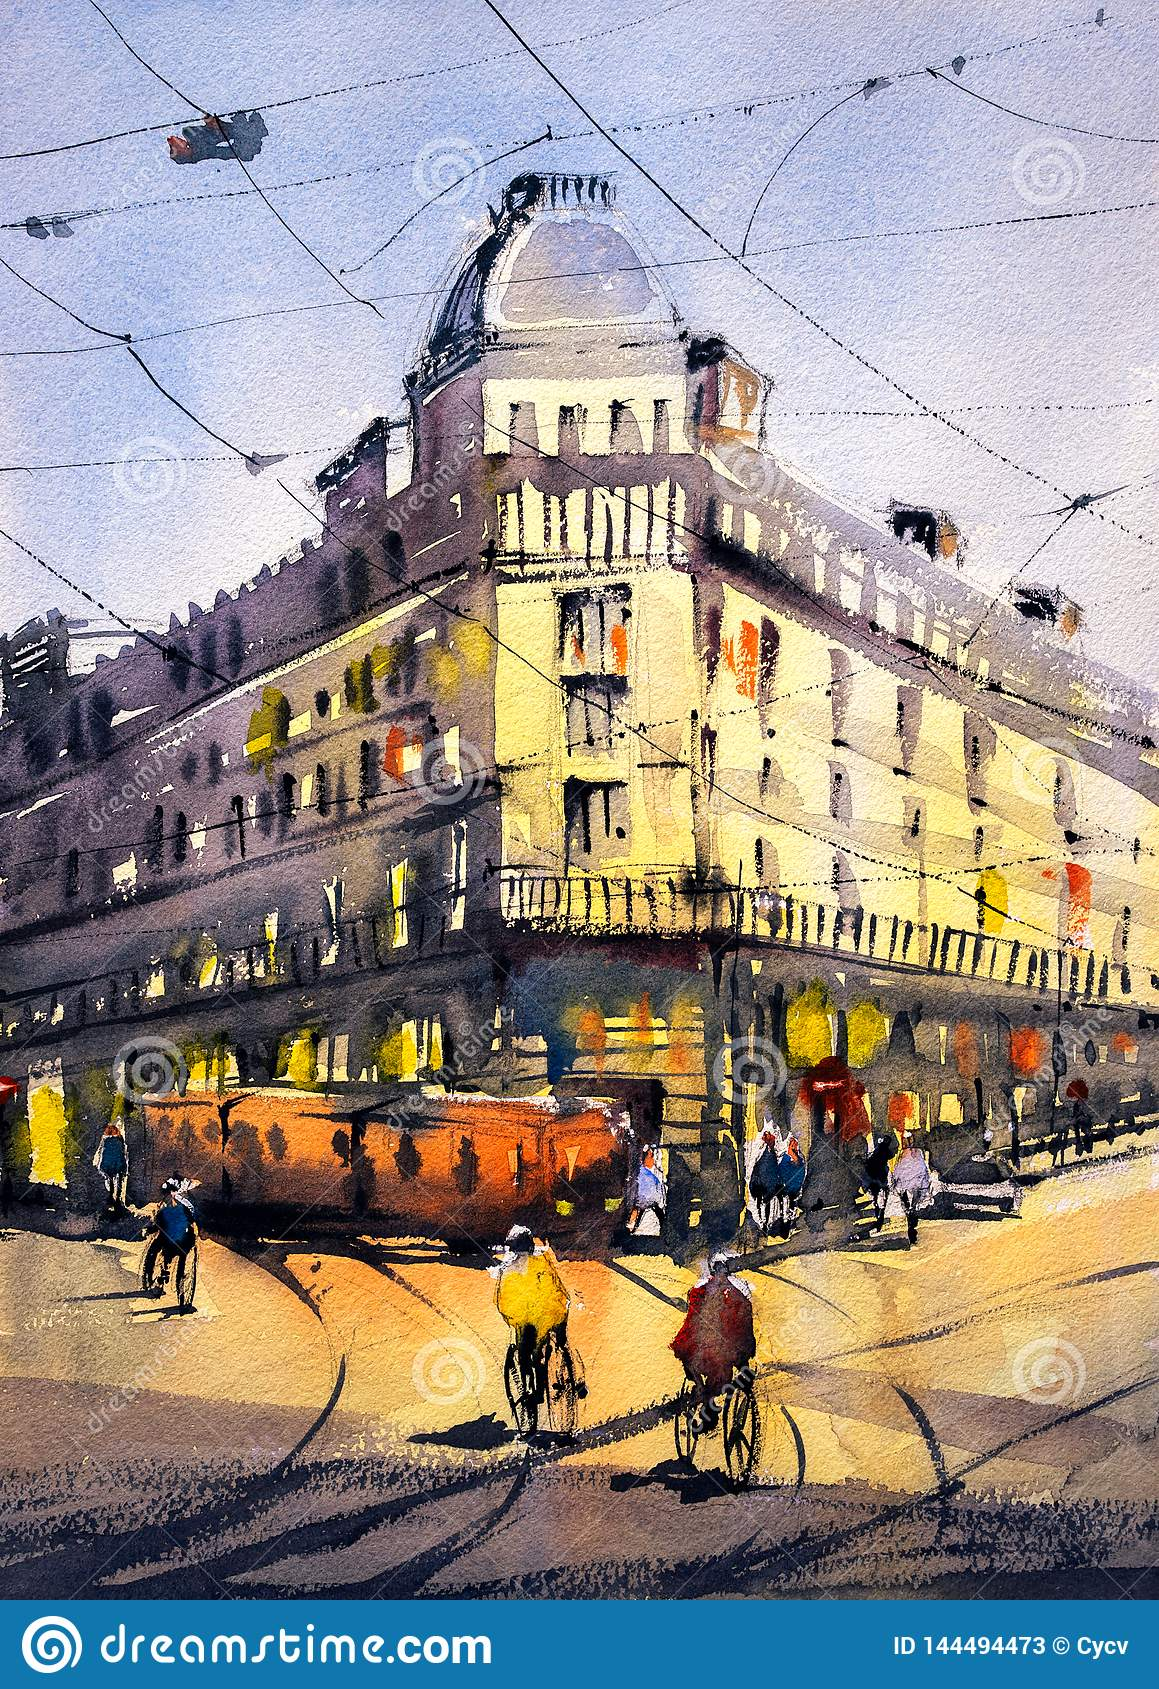 Watercolor Painting - Street View of Paris